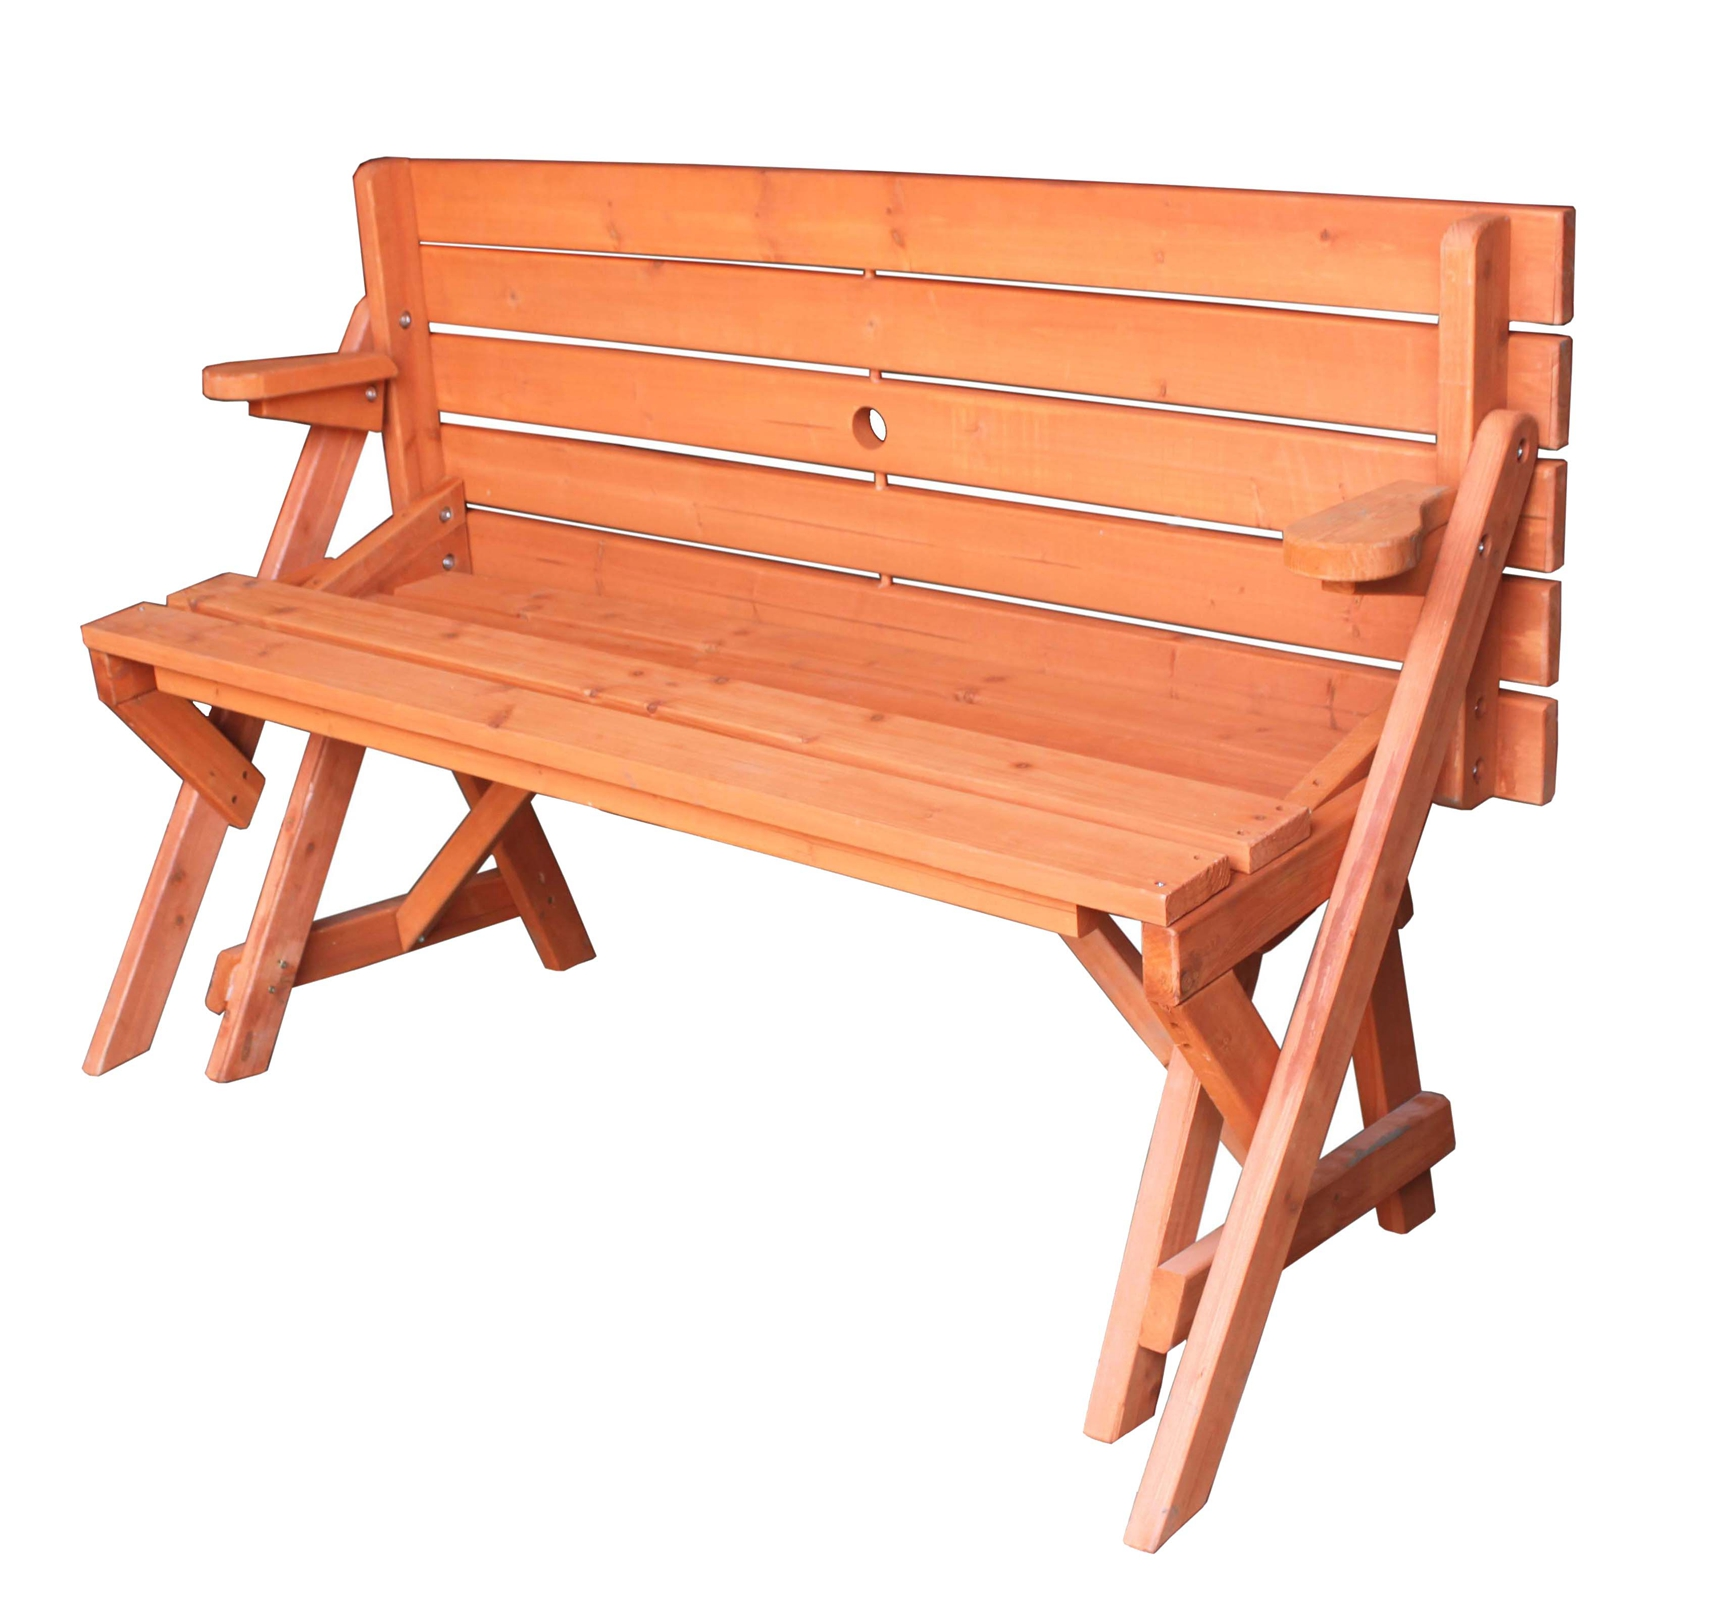 Wooden folding bench picnic garden seat table 2 in 1 - Table picnic bois enfant ...